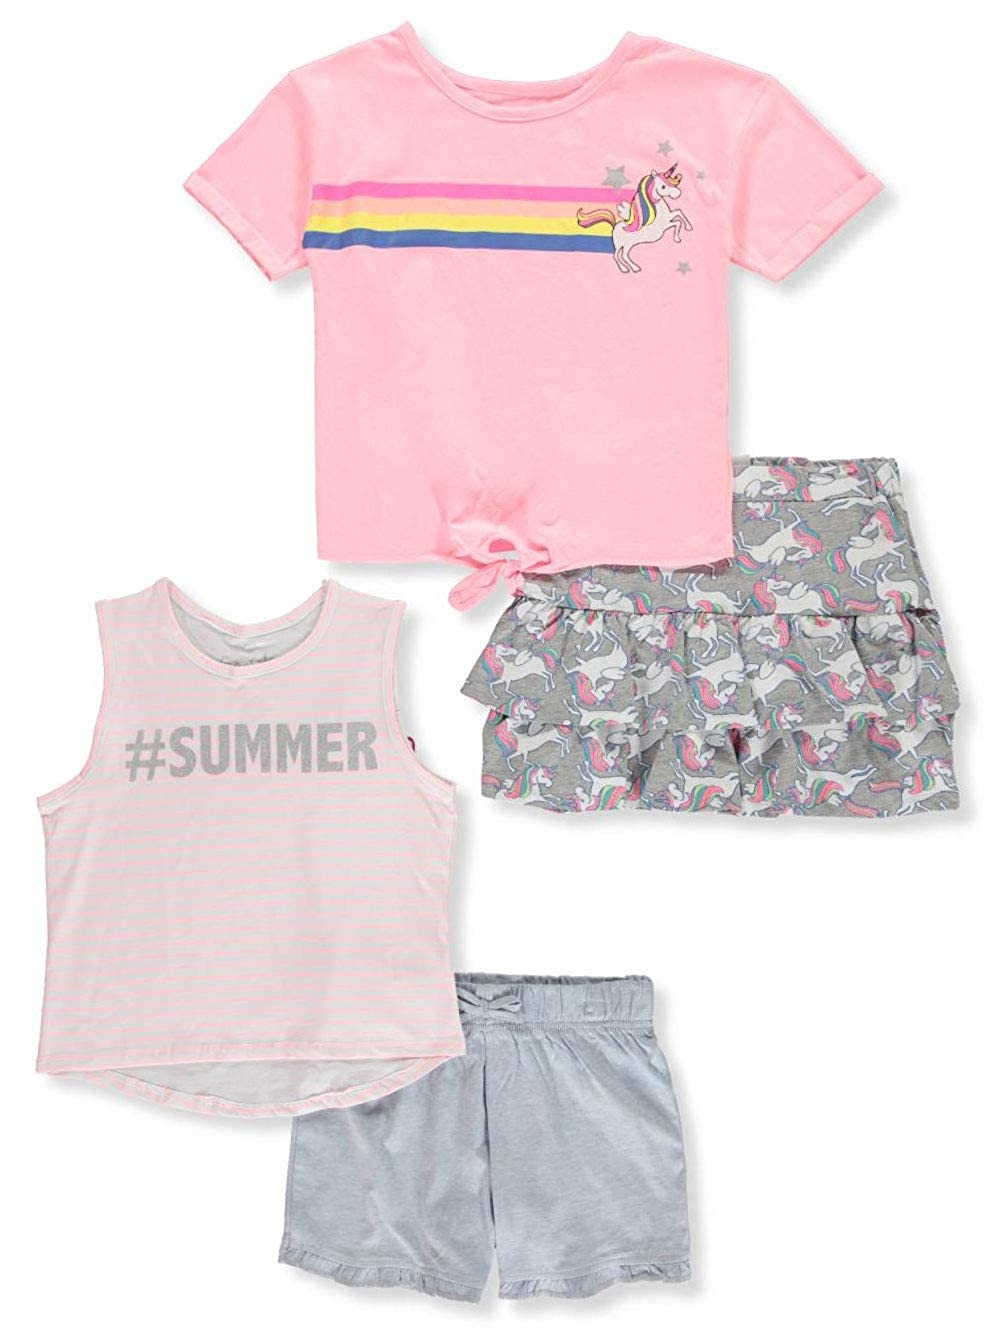 Freestyle Revolution Girls 4-Piece Mix-and-Match Shorts Set Outfit